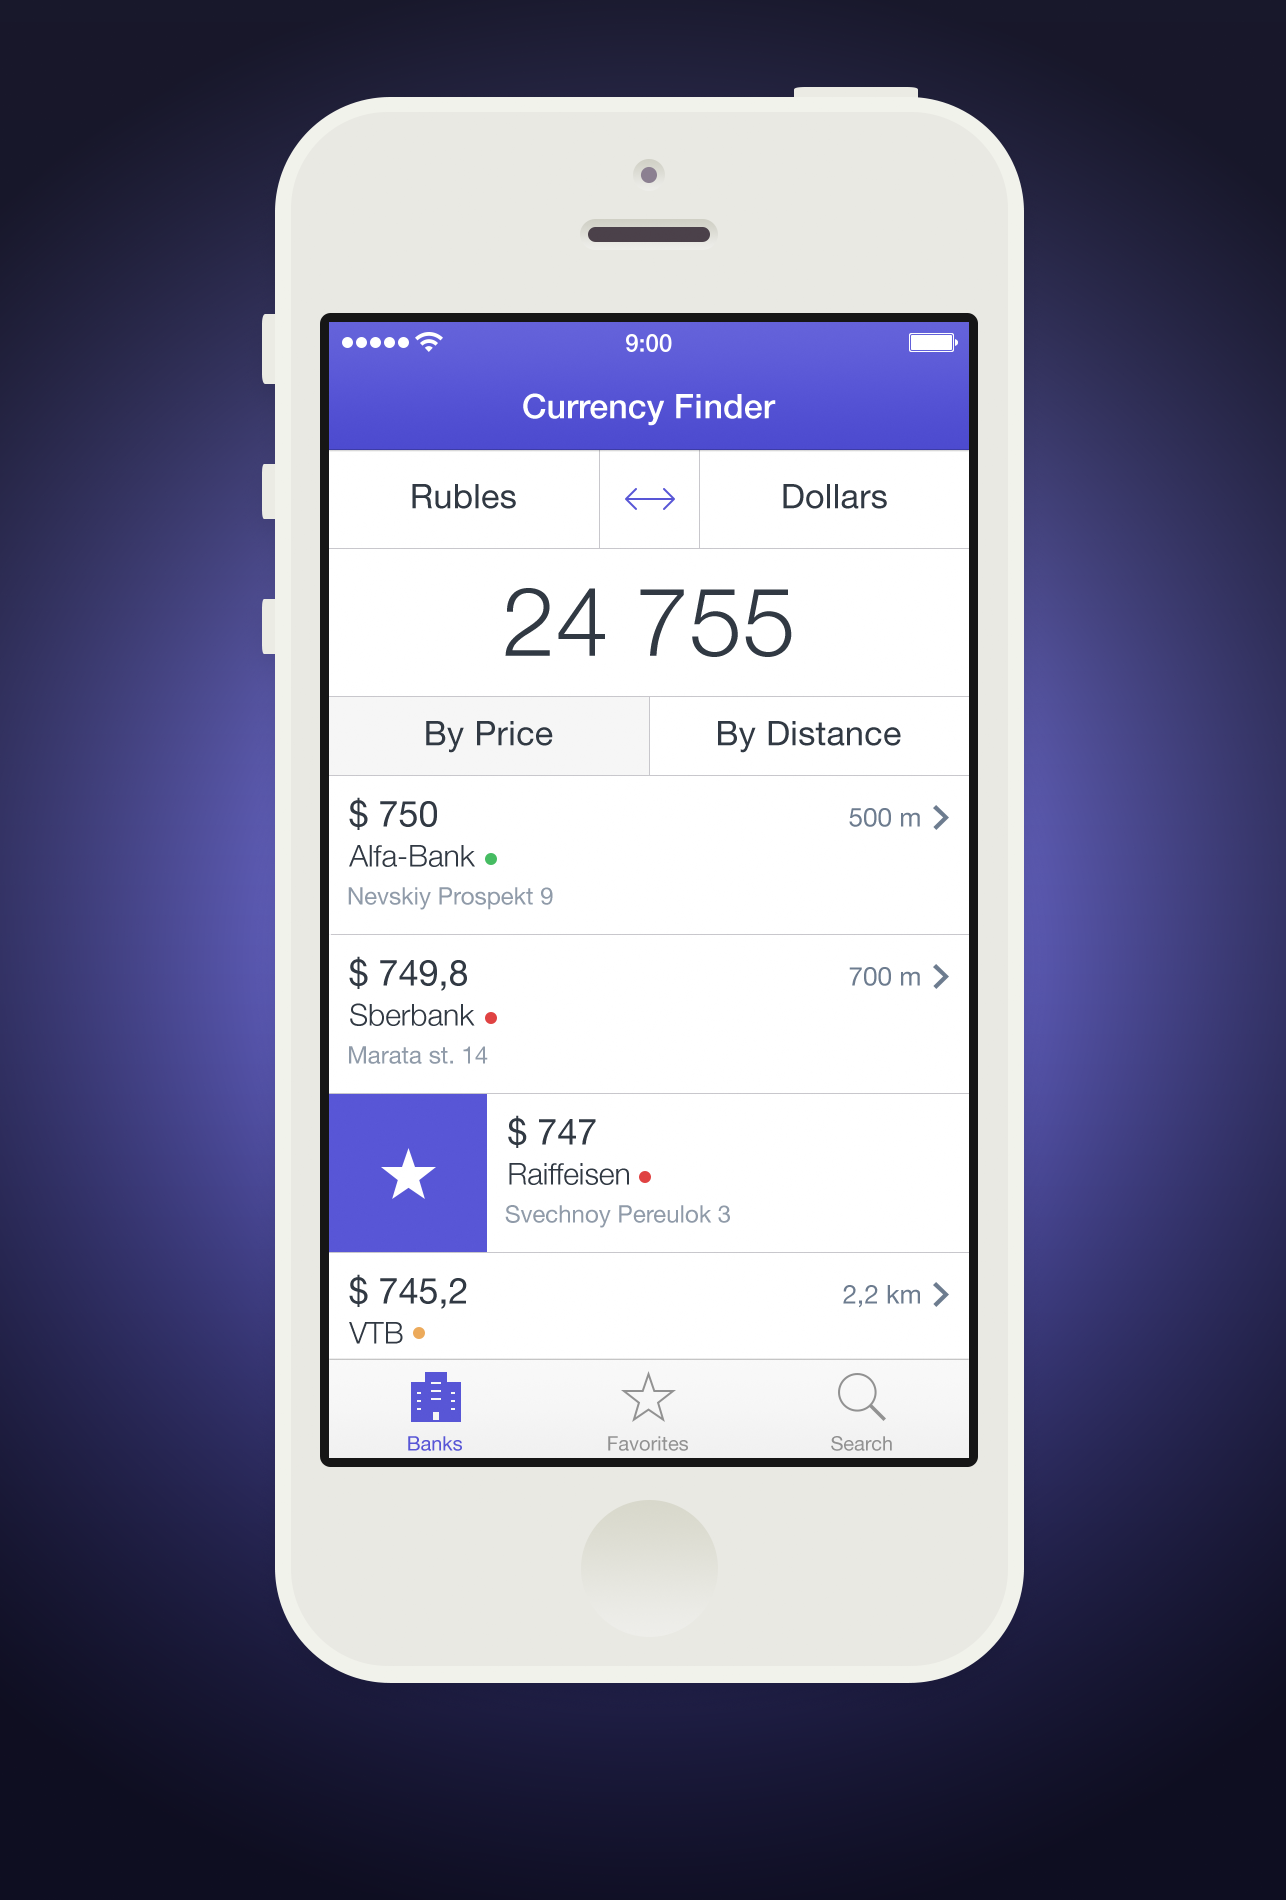 Currency Finder [Soon in the App Store] by Alexander